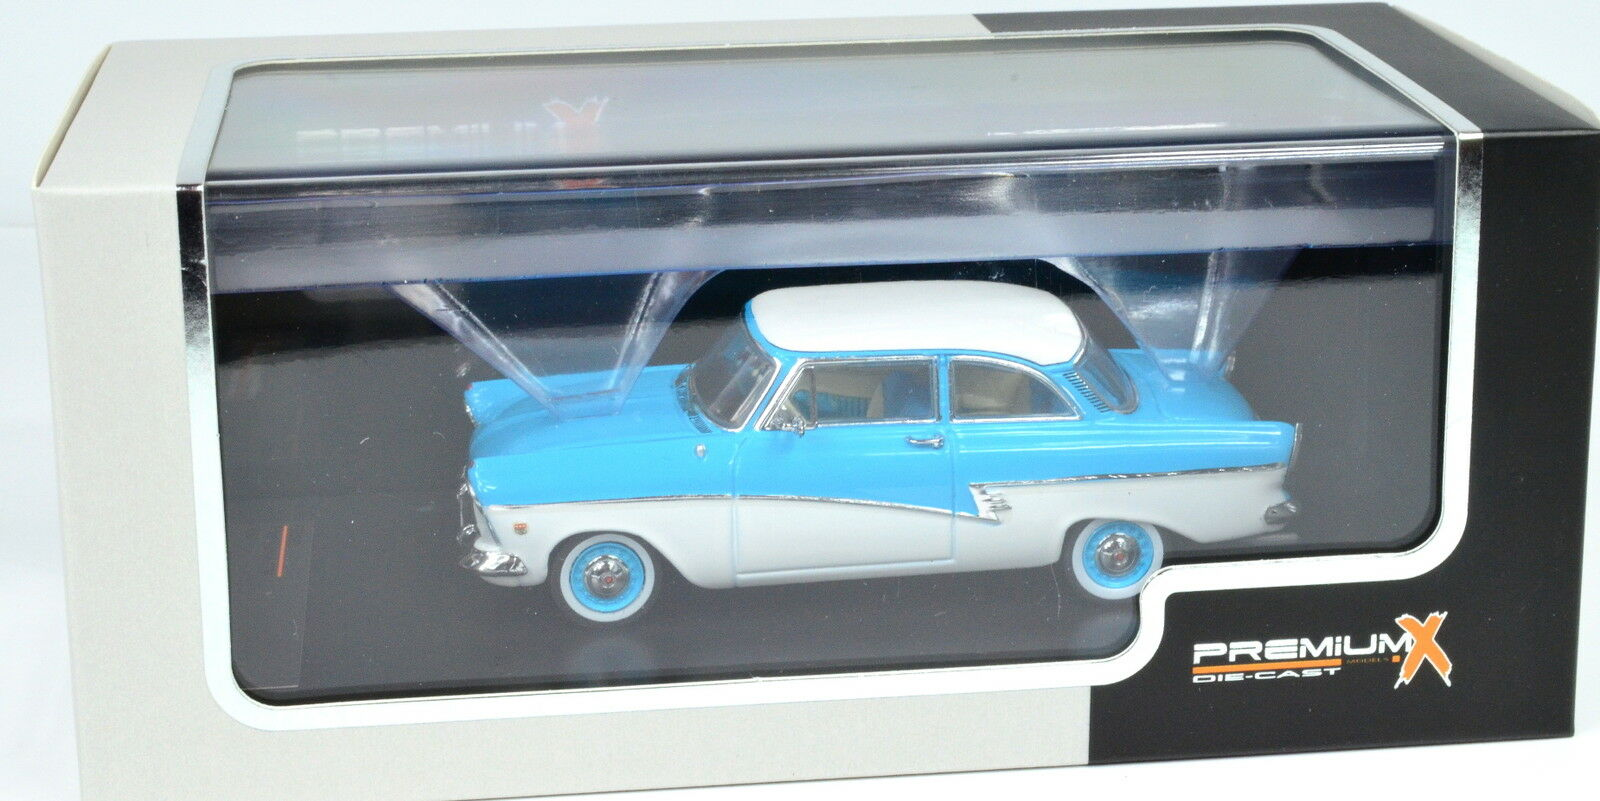 Ford Taunus 17m Year 1957 Scale 1 43 bluee-White Von Premiumx